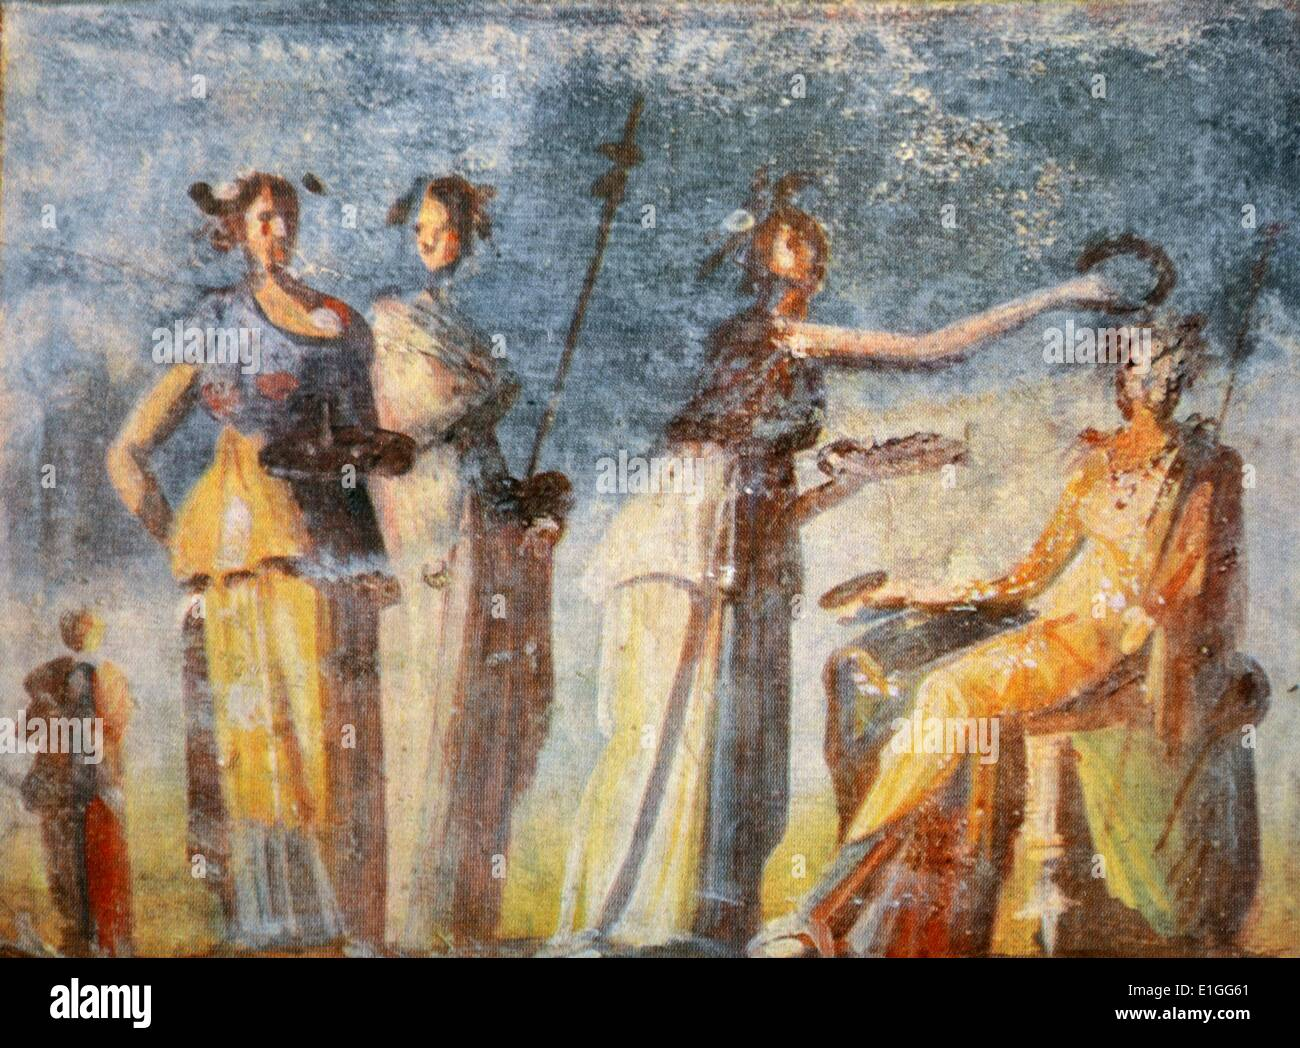 Greek fresco depicting a coronation of a cult leader from the Casa d'Adonide. Dated 1st Century B.C. - Stock Image